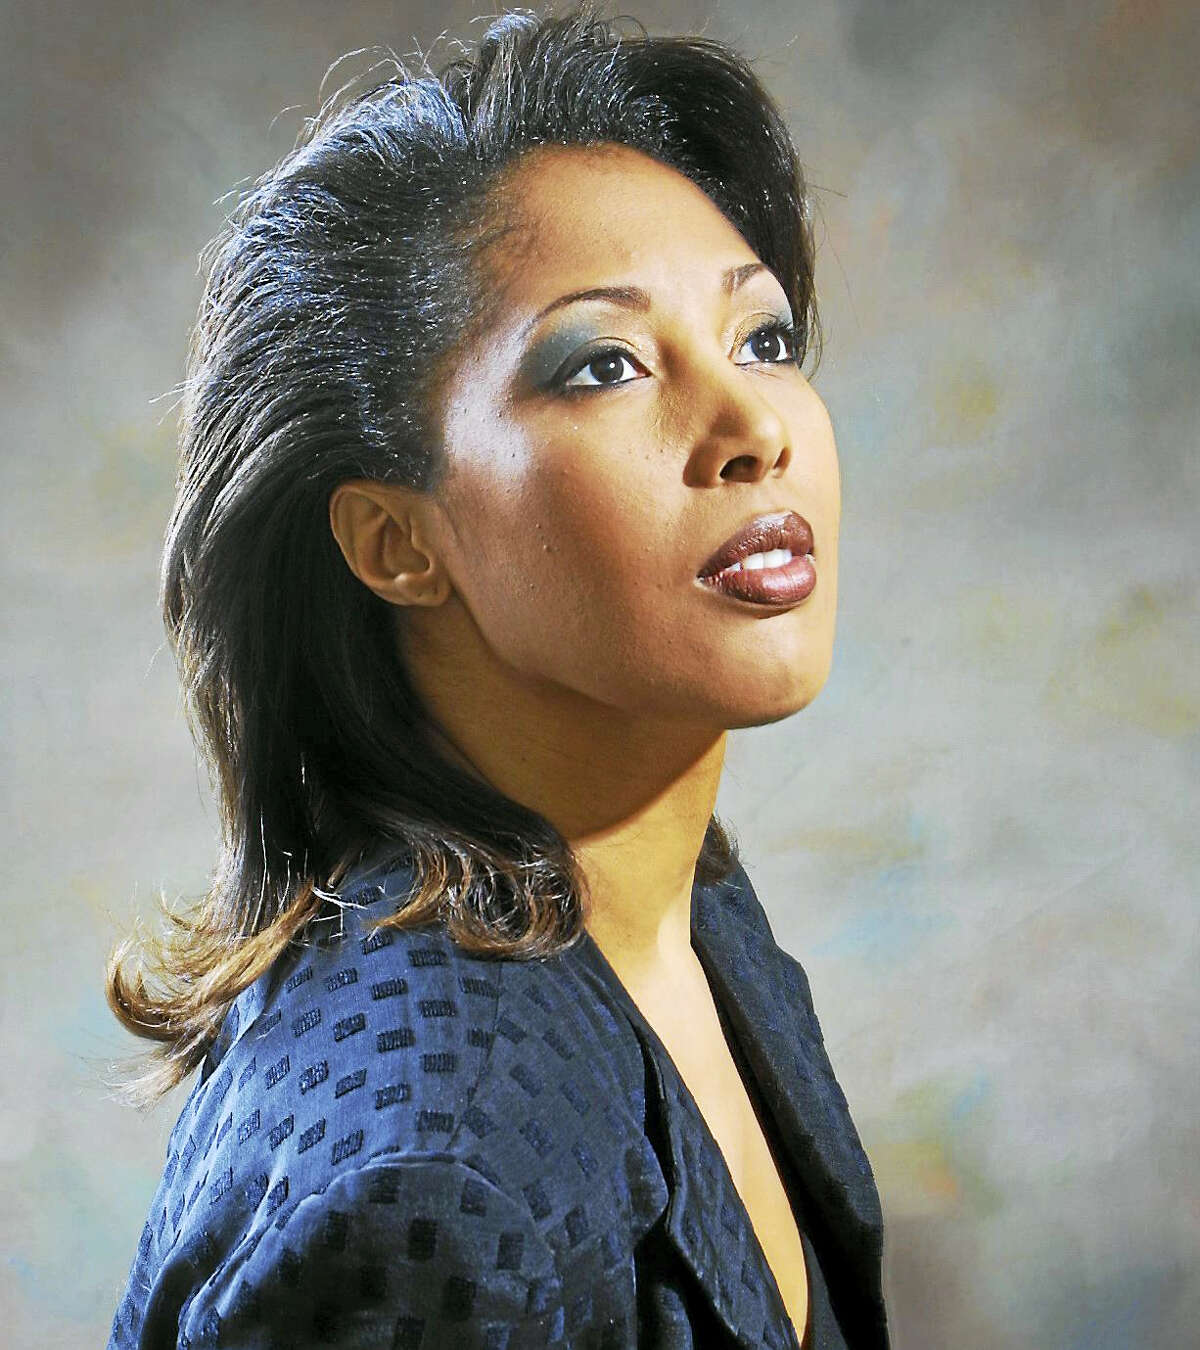 Contributed photoCarla Cook, daughter of Sam Cook, is part of the upcoming Daughters of Rhythm concert, set for July 14 at Infinity Music Hall in Hartford.